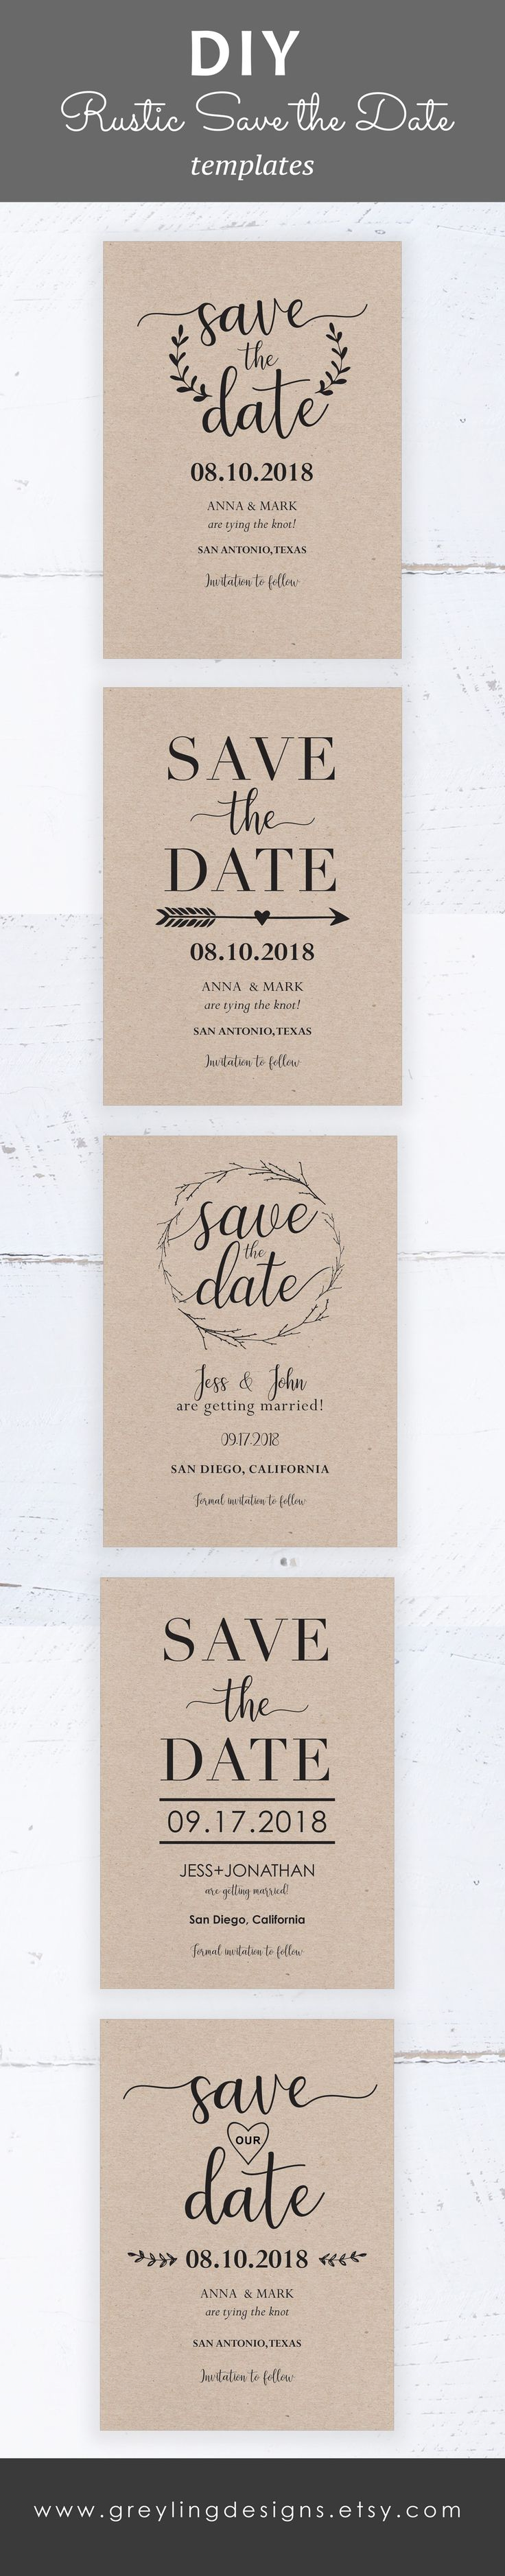 rustic wedding invitations diy kits%0A Rustic save the date template  instant download  editable template   printable save the date